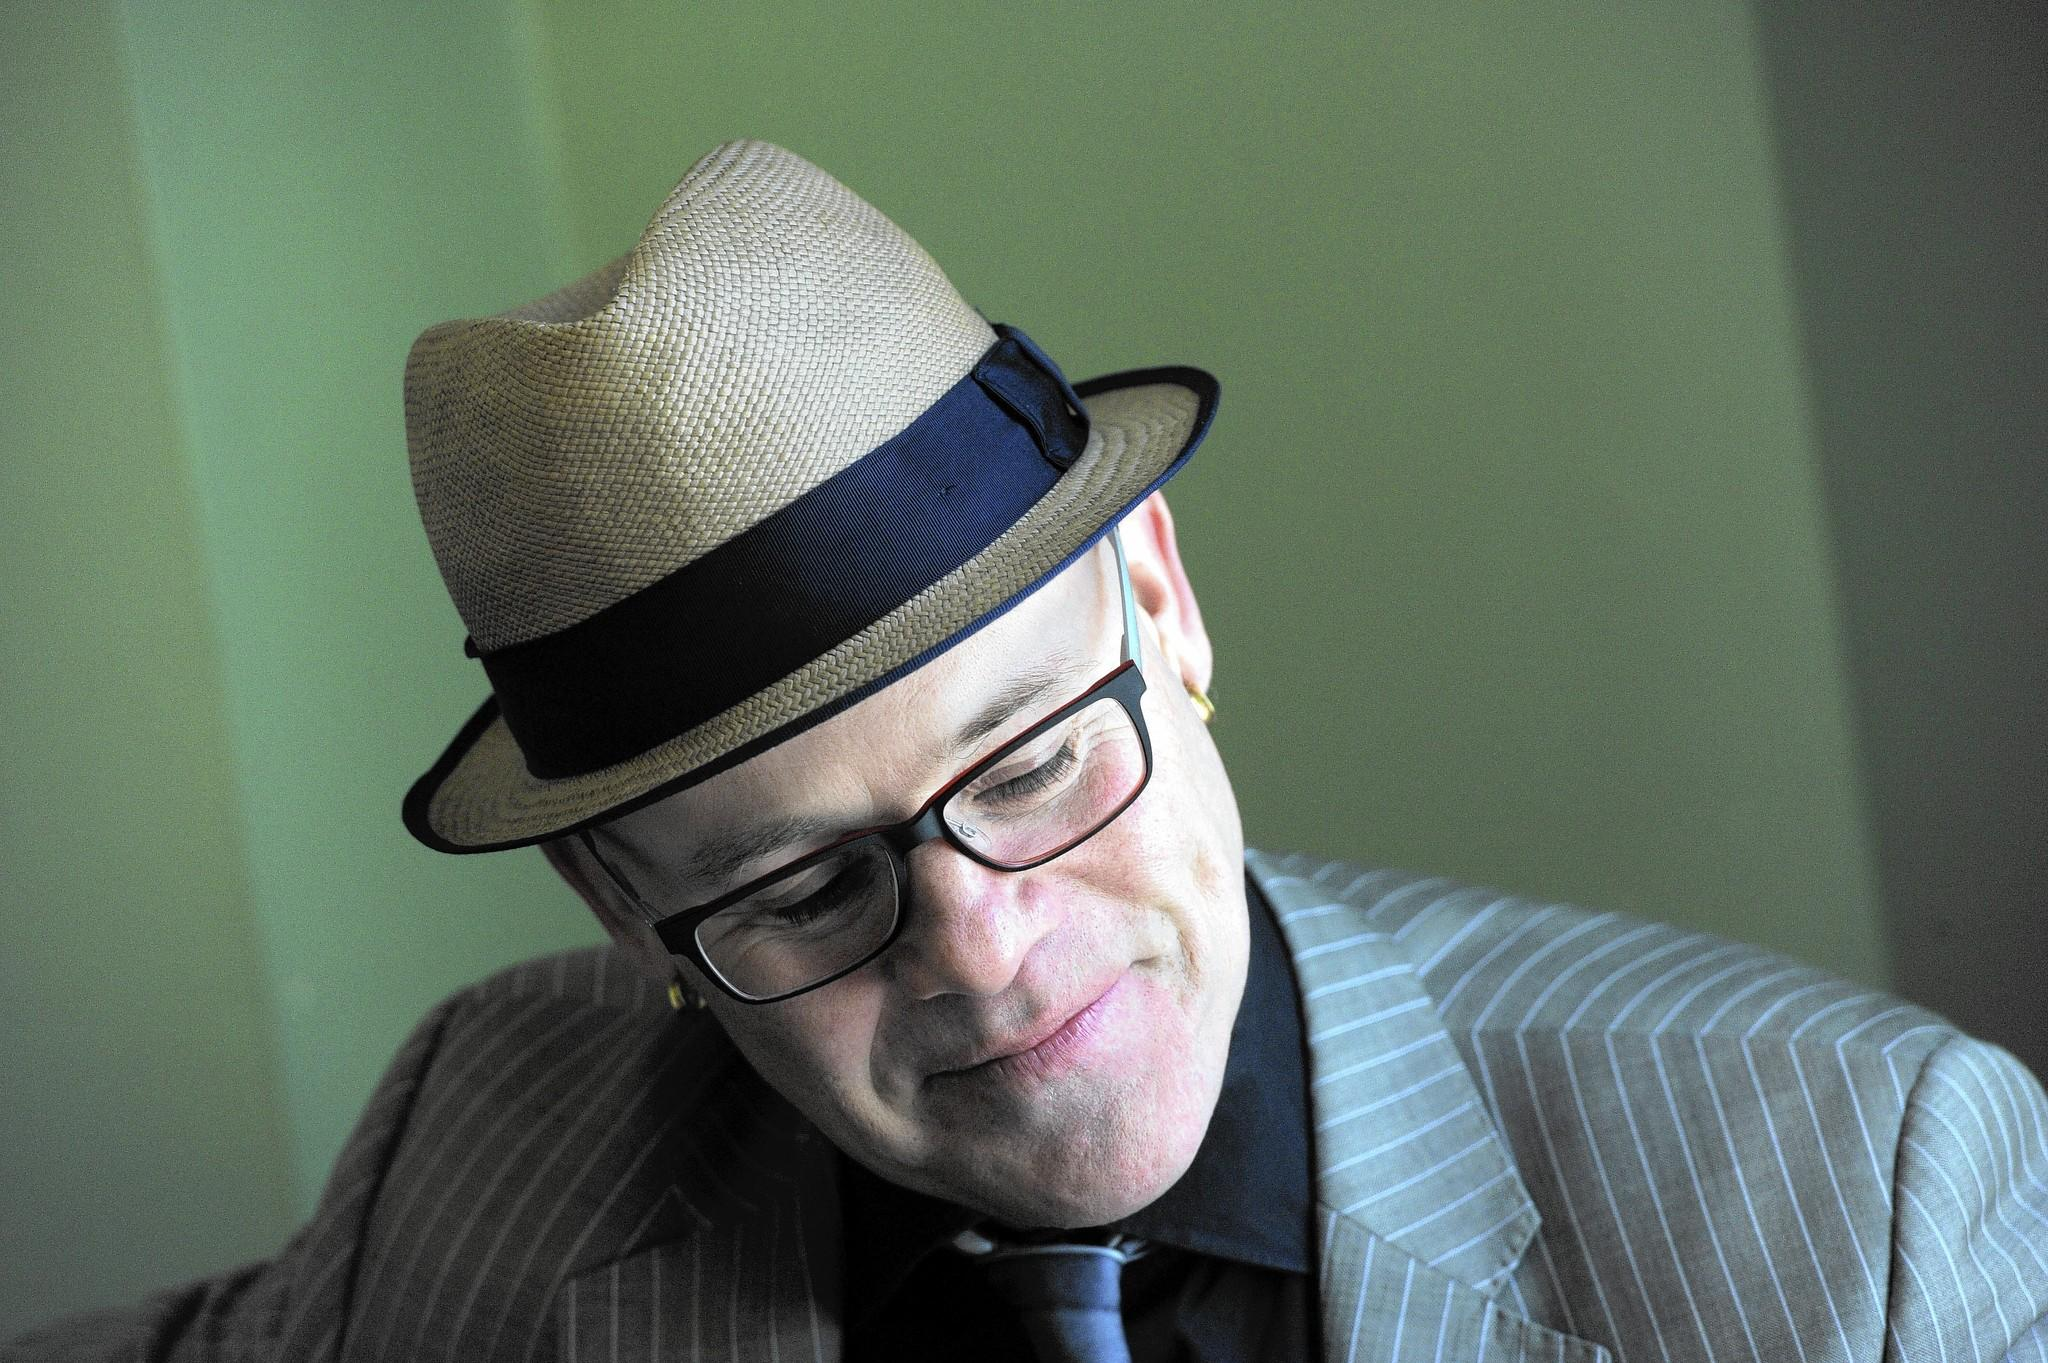 Thomas Dolby, who has just been named Johns Hopkins University's first Homewood professor of the arts, has done pioneering work in digital music.